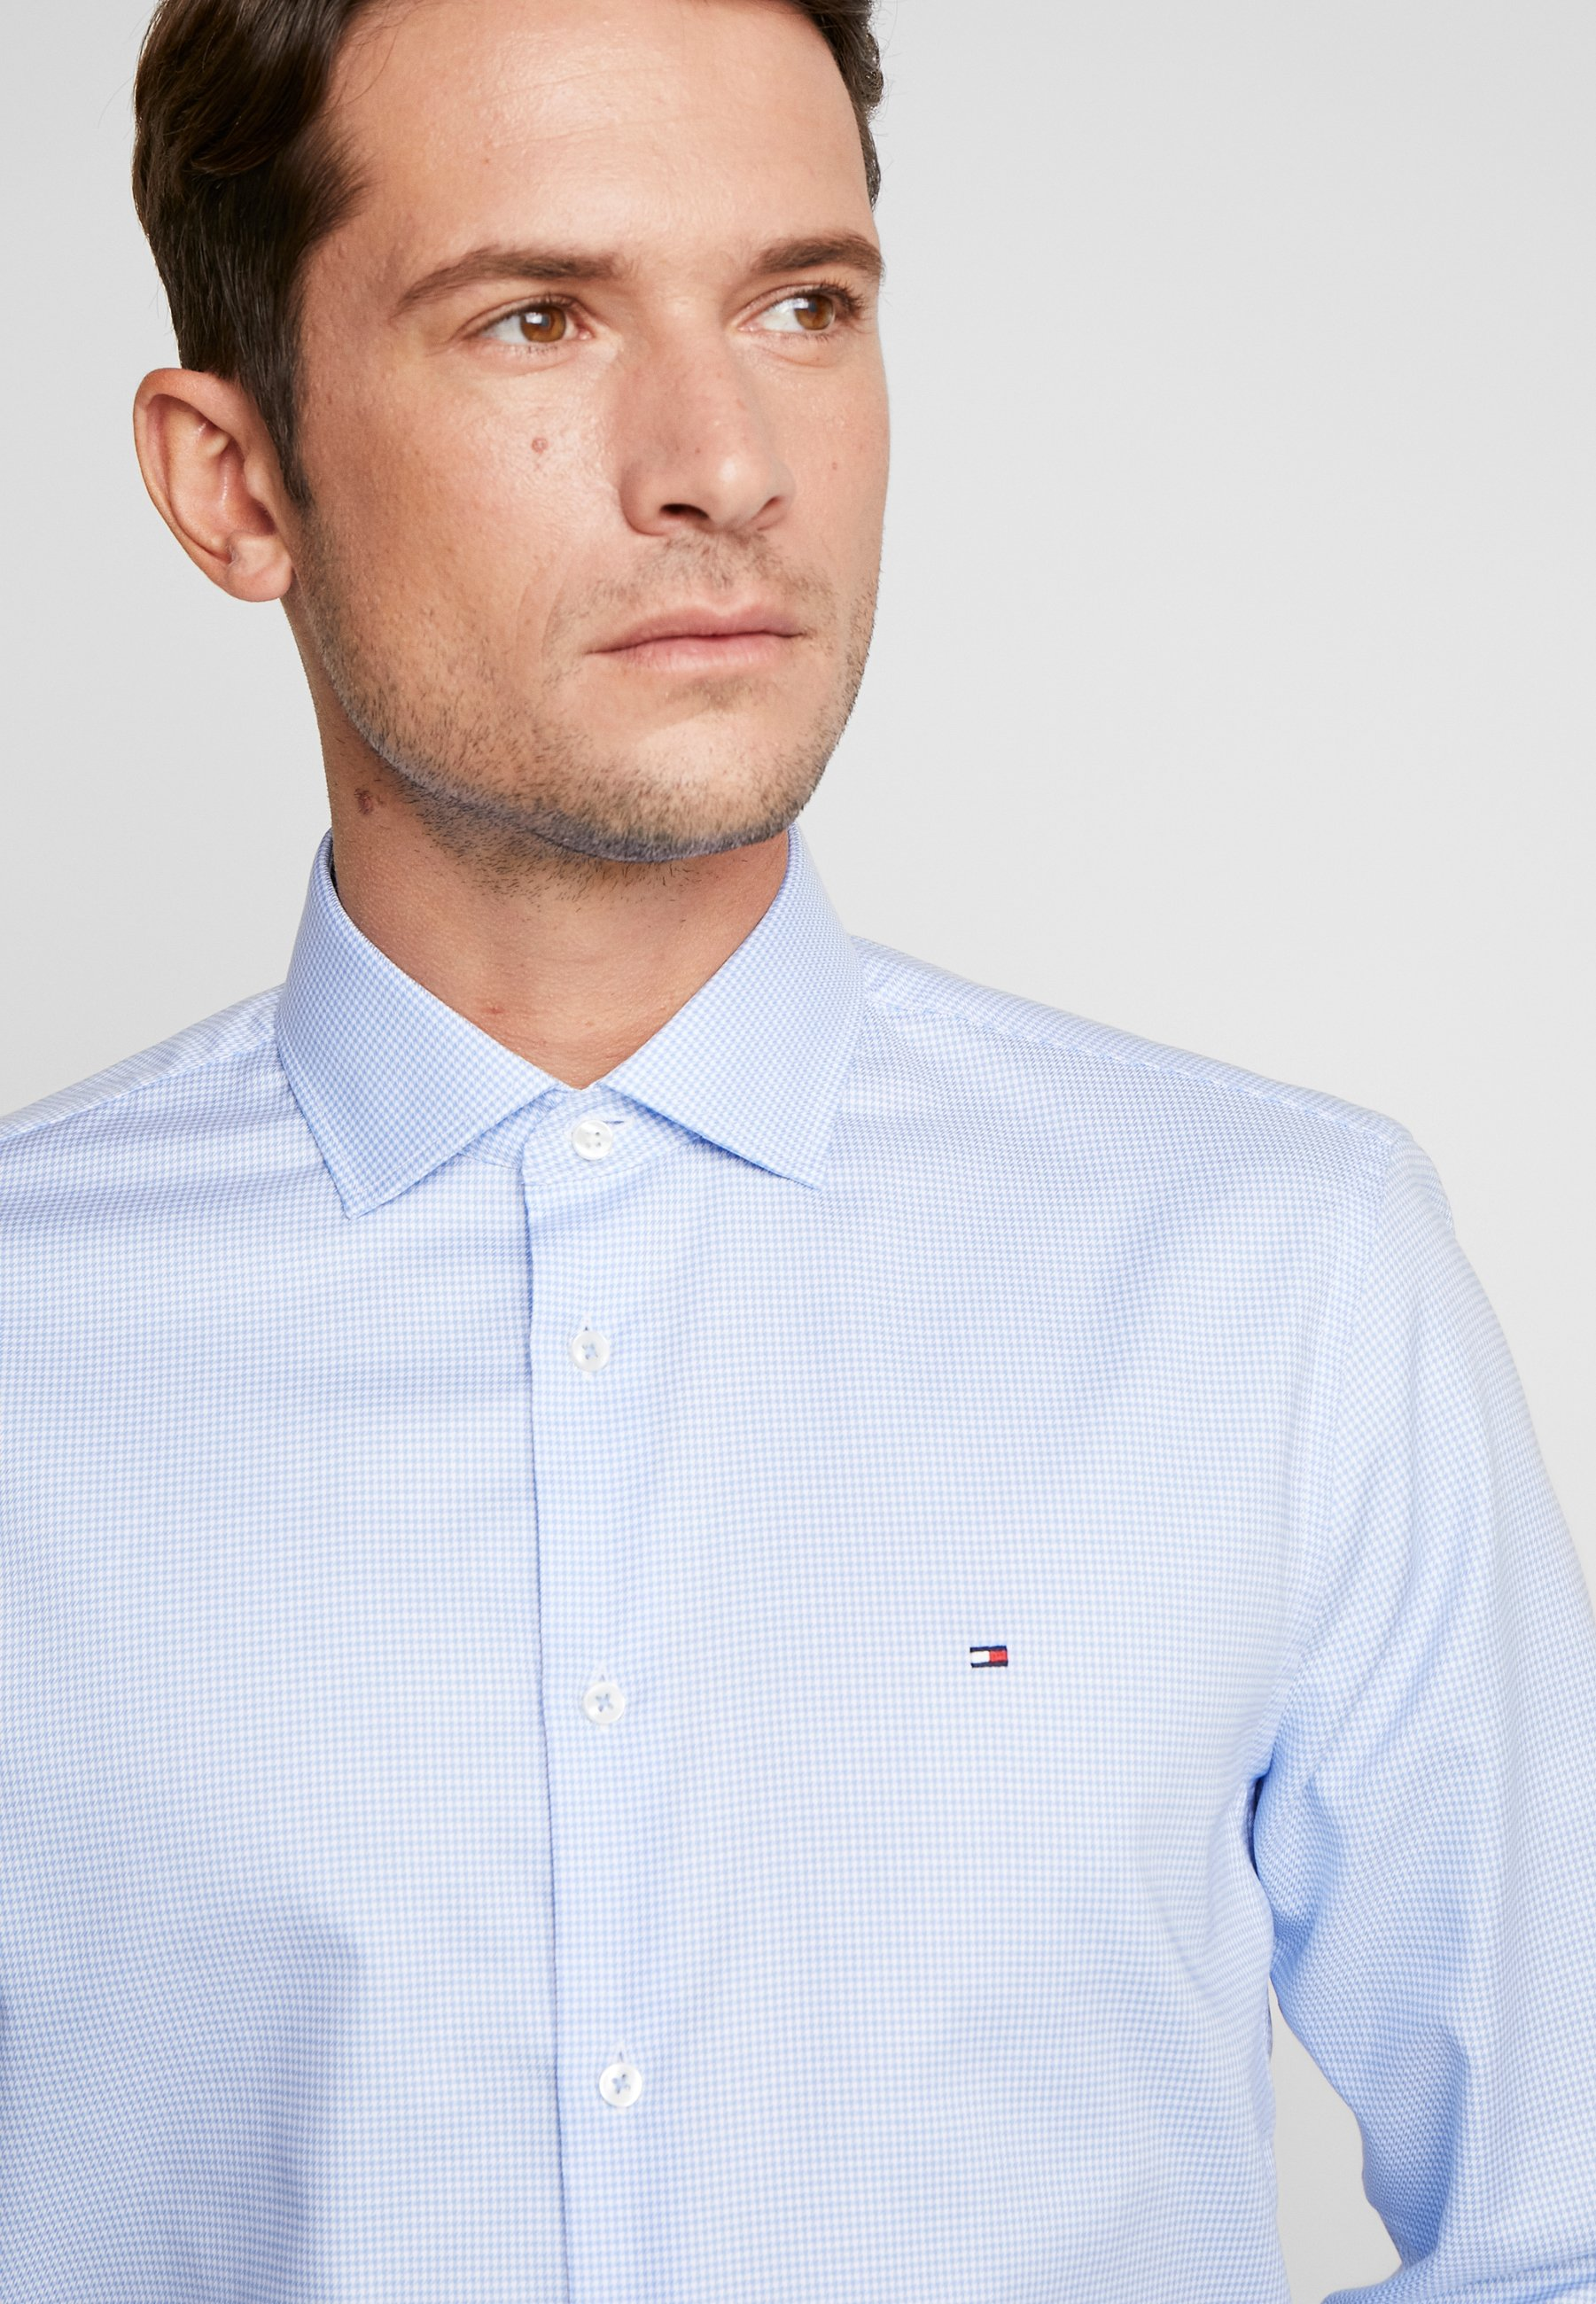 Tommy Hilfiger Tailored Classic Slim Shirt - Formal Blue UK